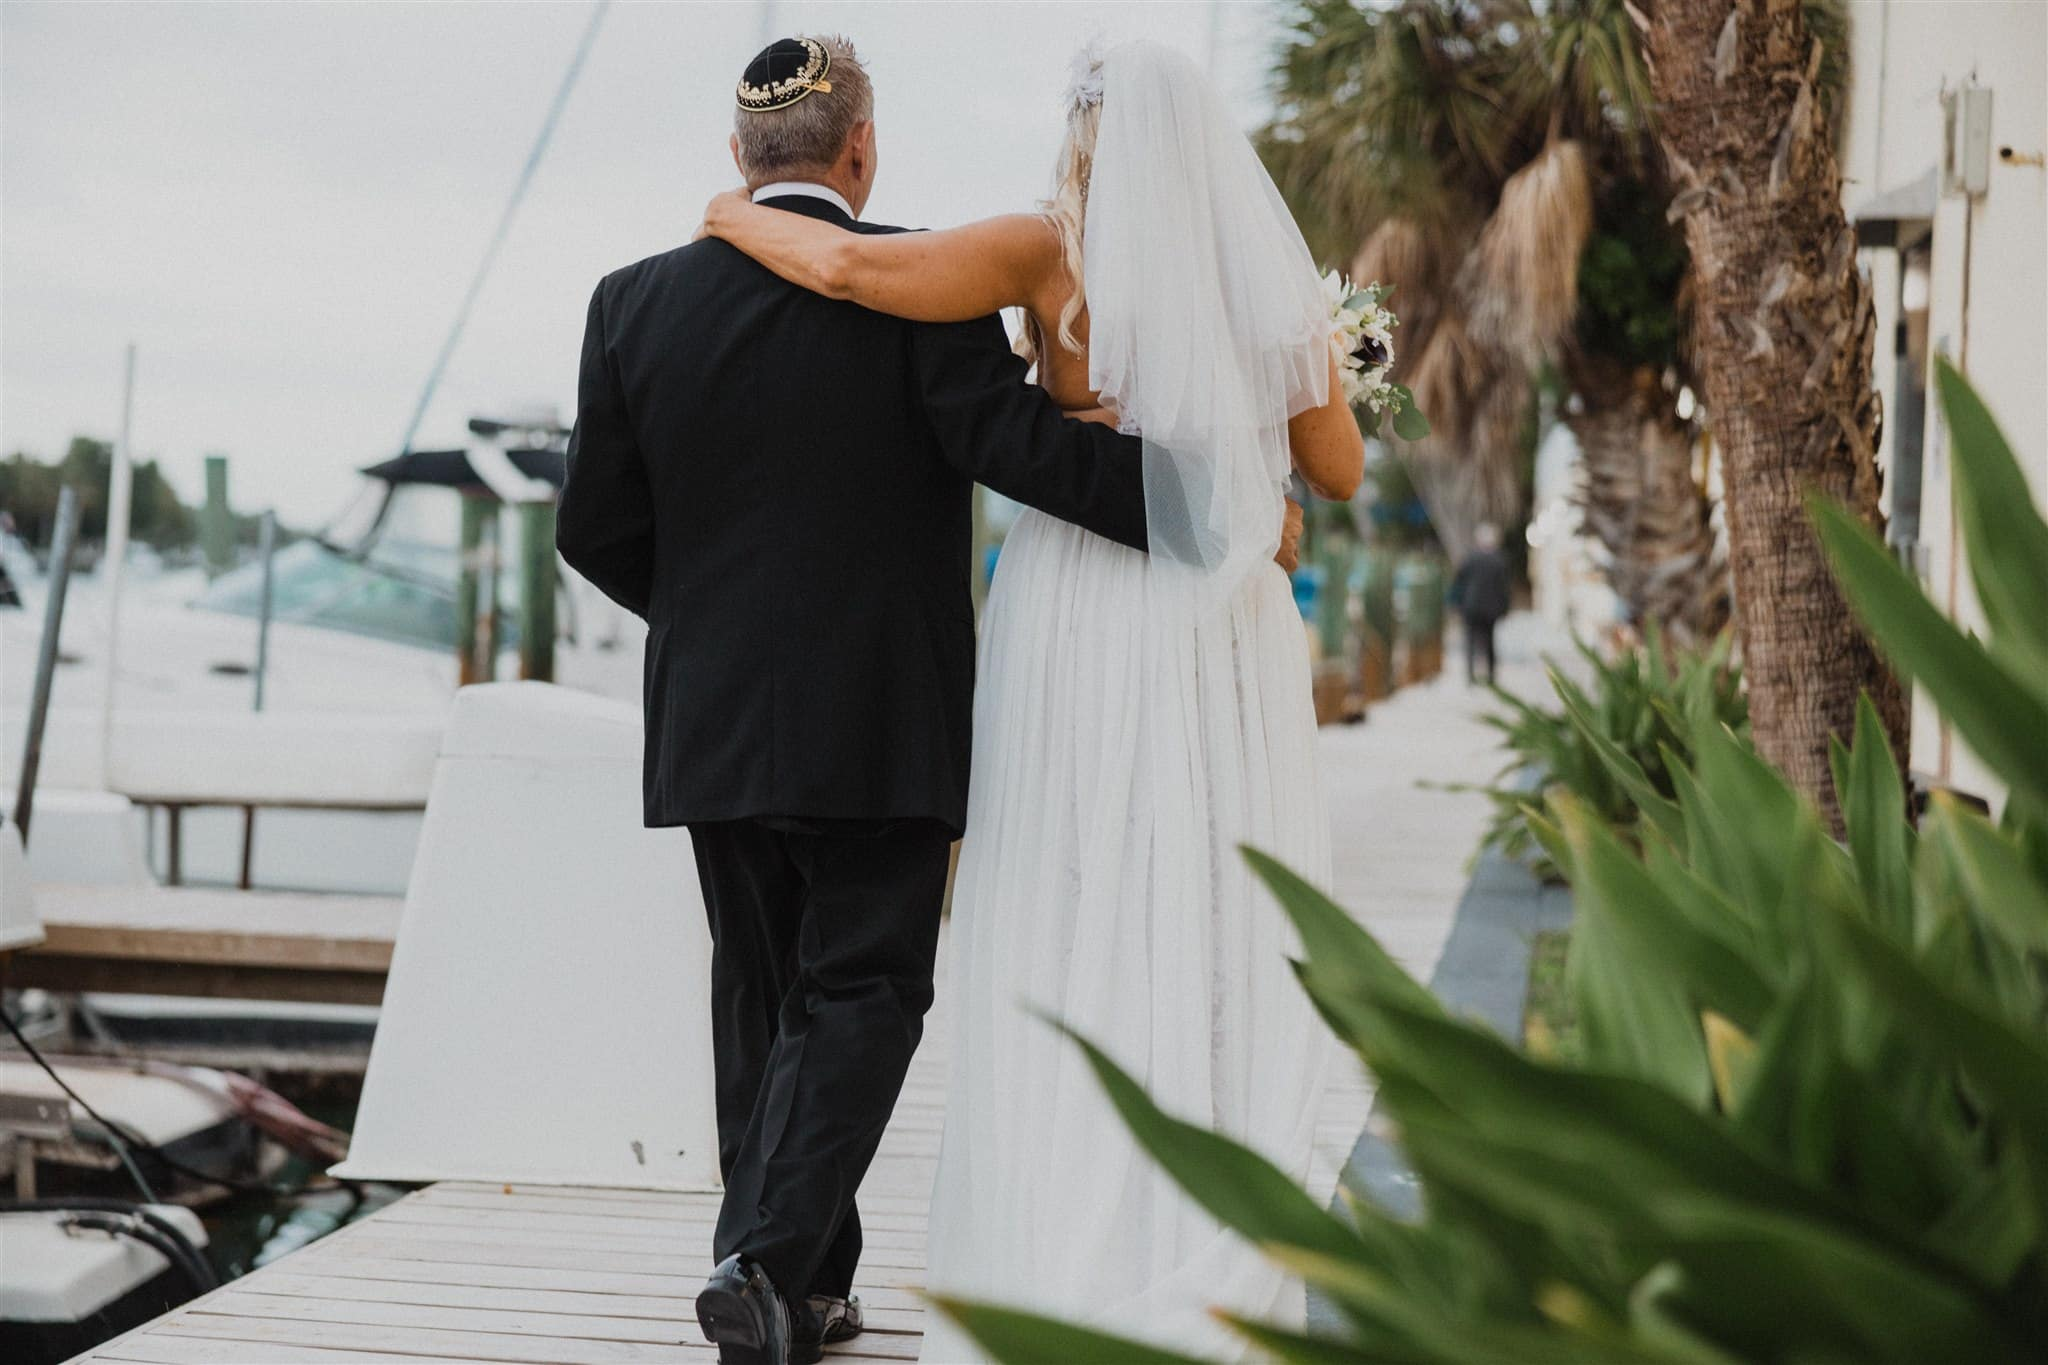 What Every Bride Needs to Know about Christmas Miami Ceremony on the beach during Covid 19 - Miami Wedding and Event Planner